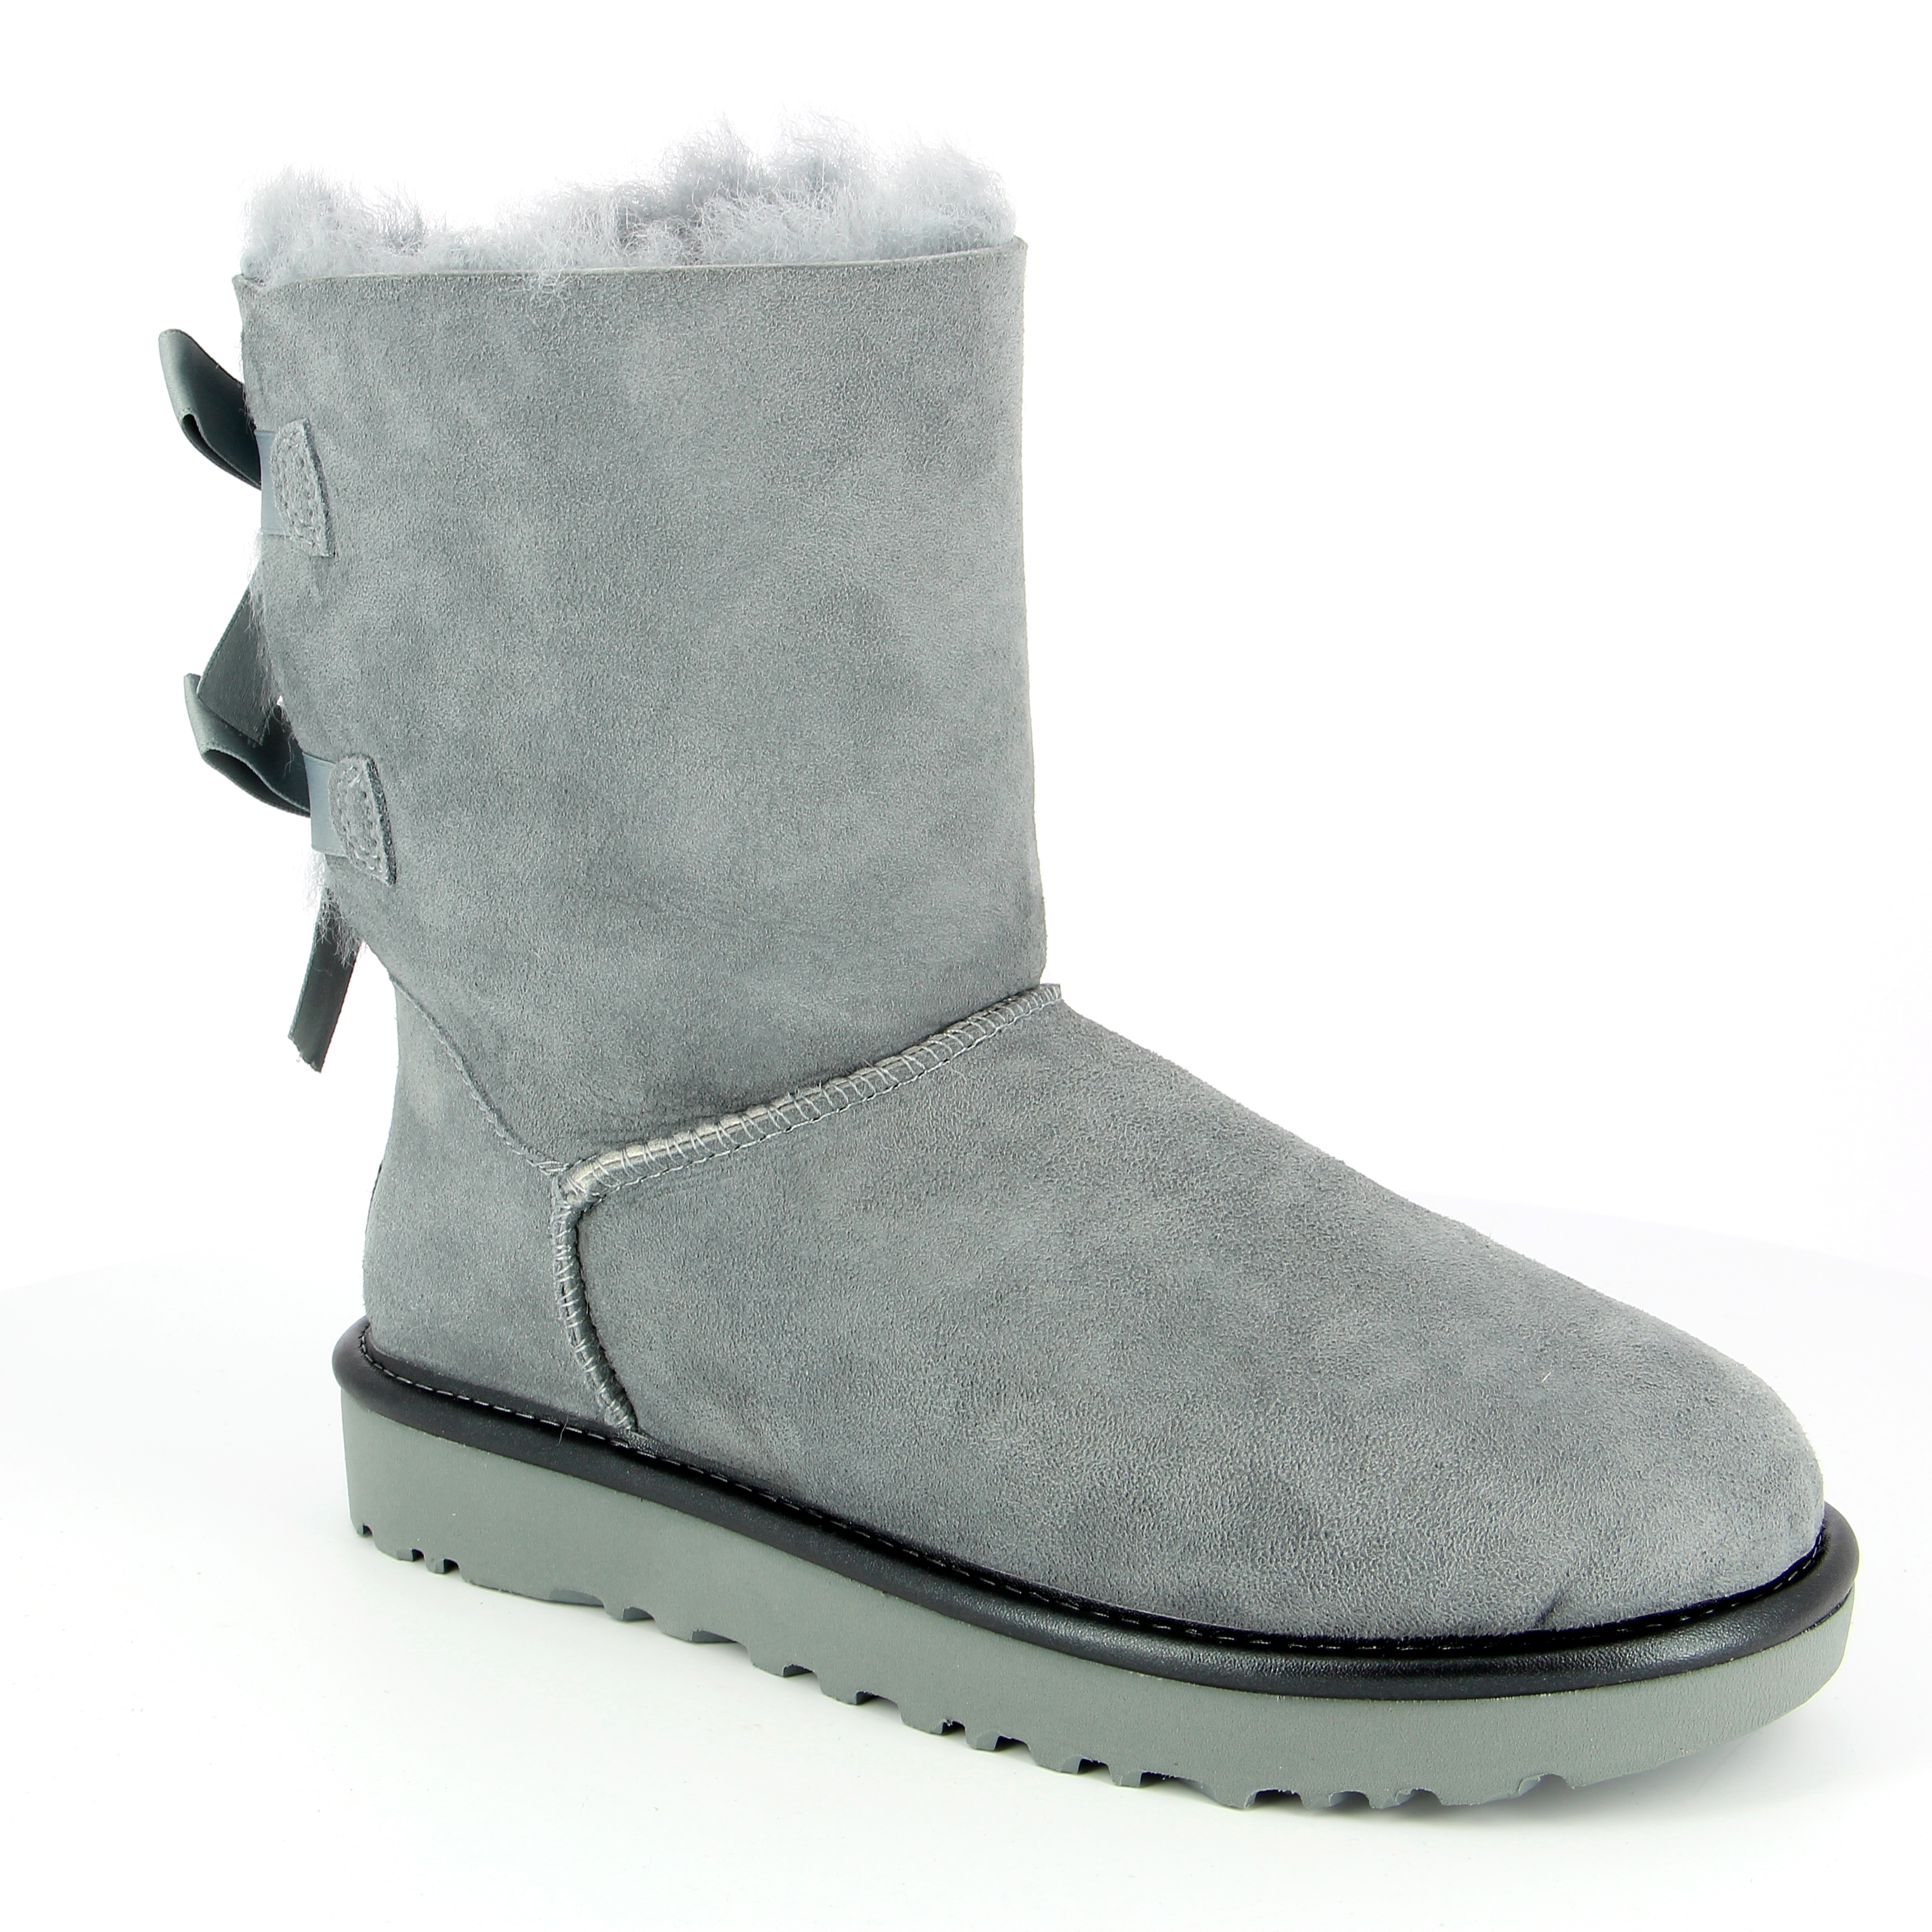 Ugg Boots gris